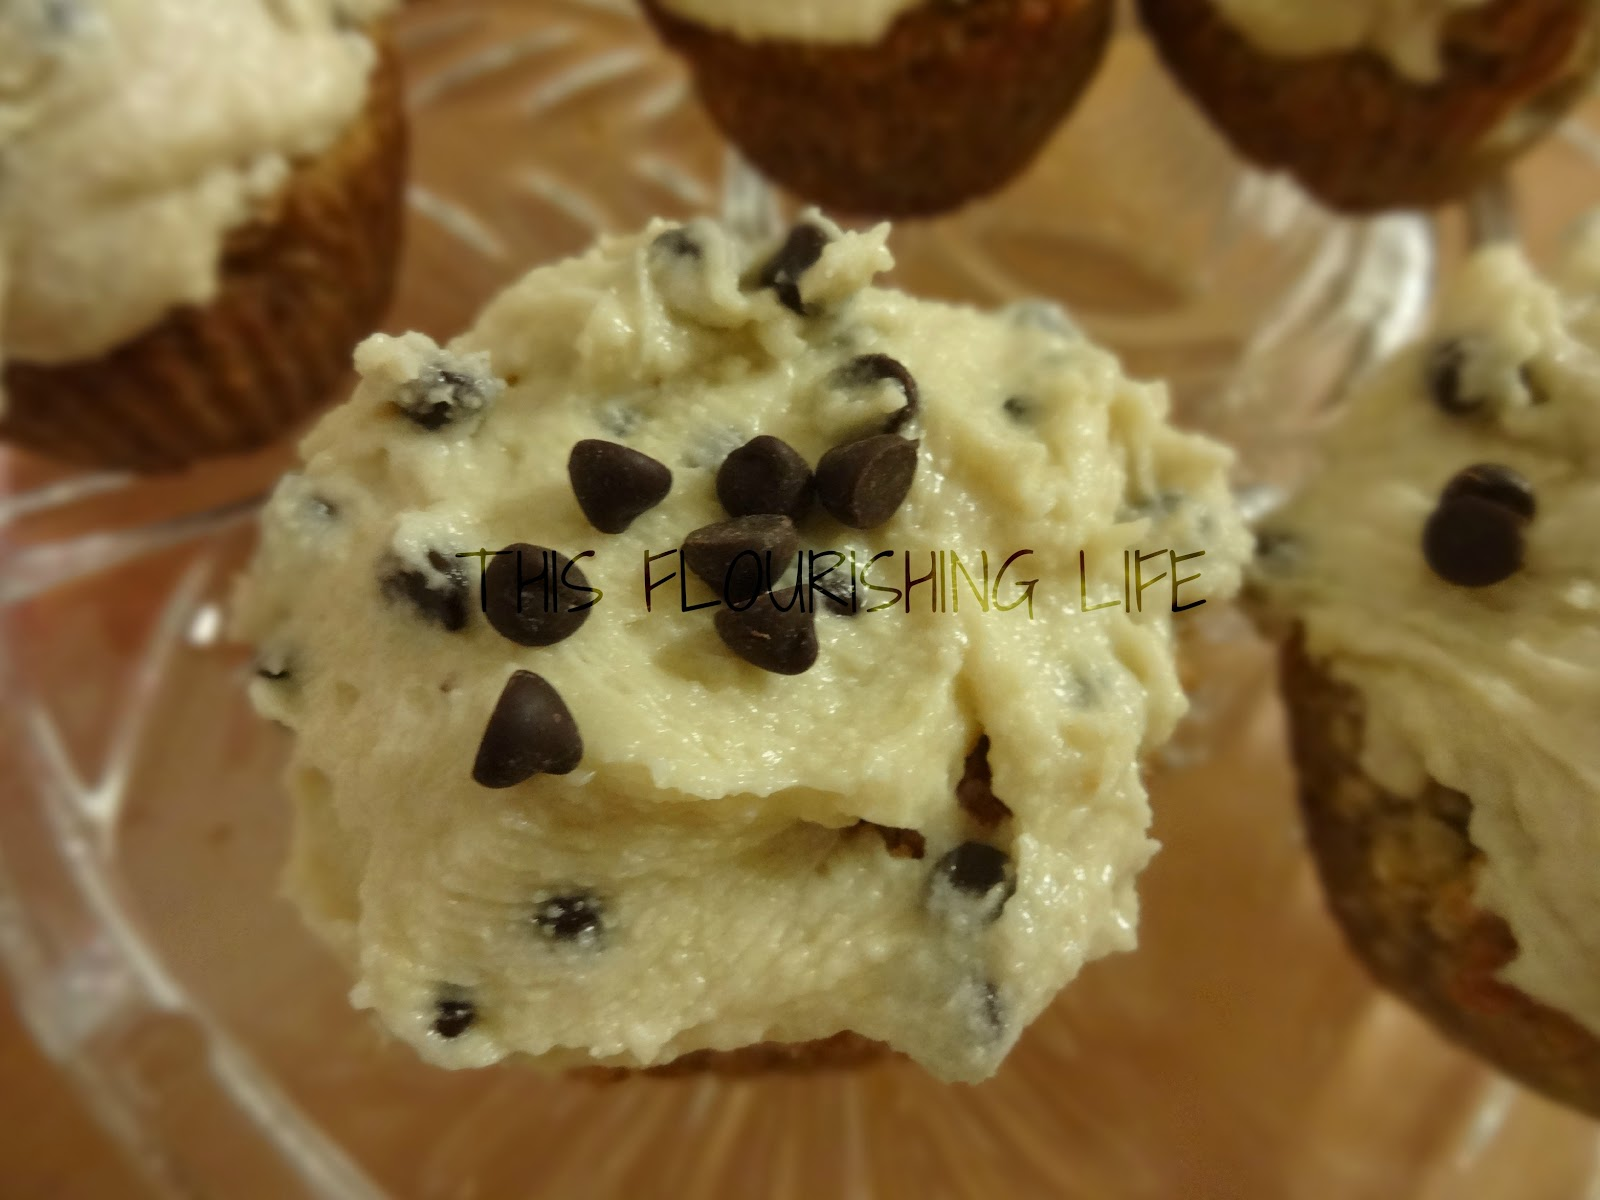 ... Cupcakes With Chocolate Chip Cookie Dough Frosting - This Flourishing